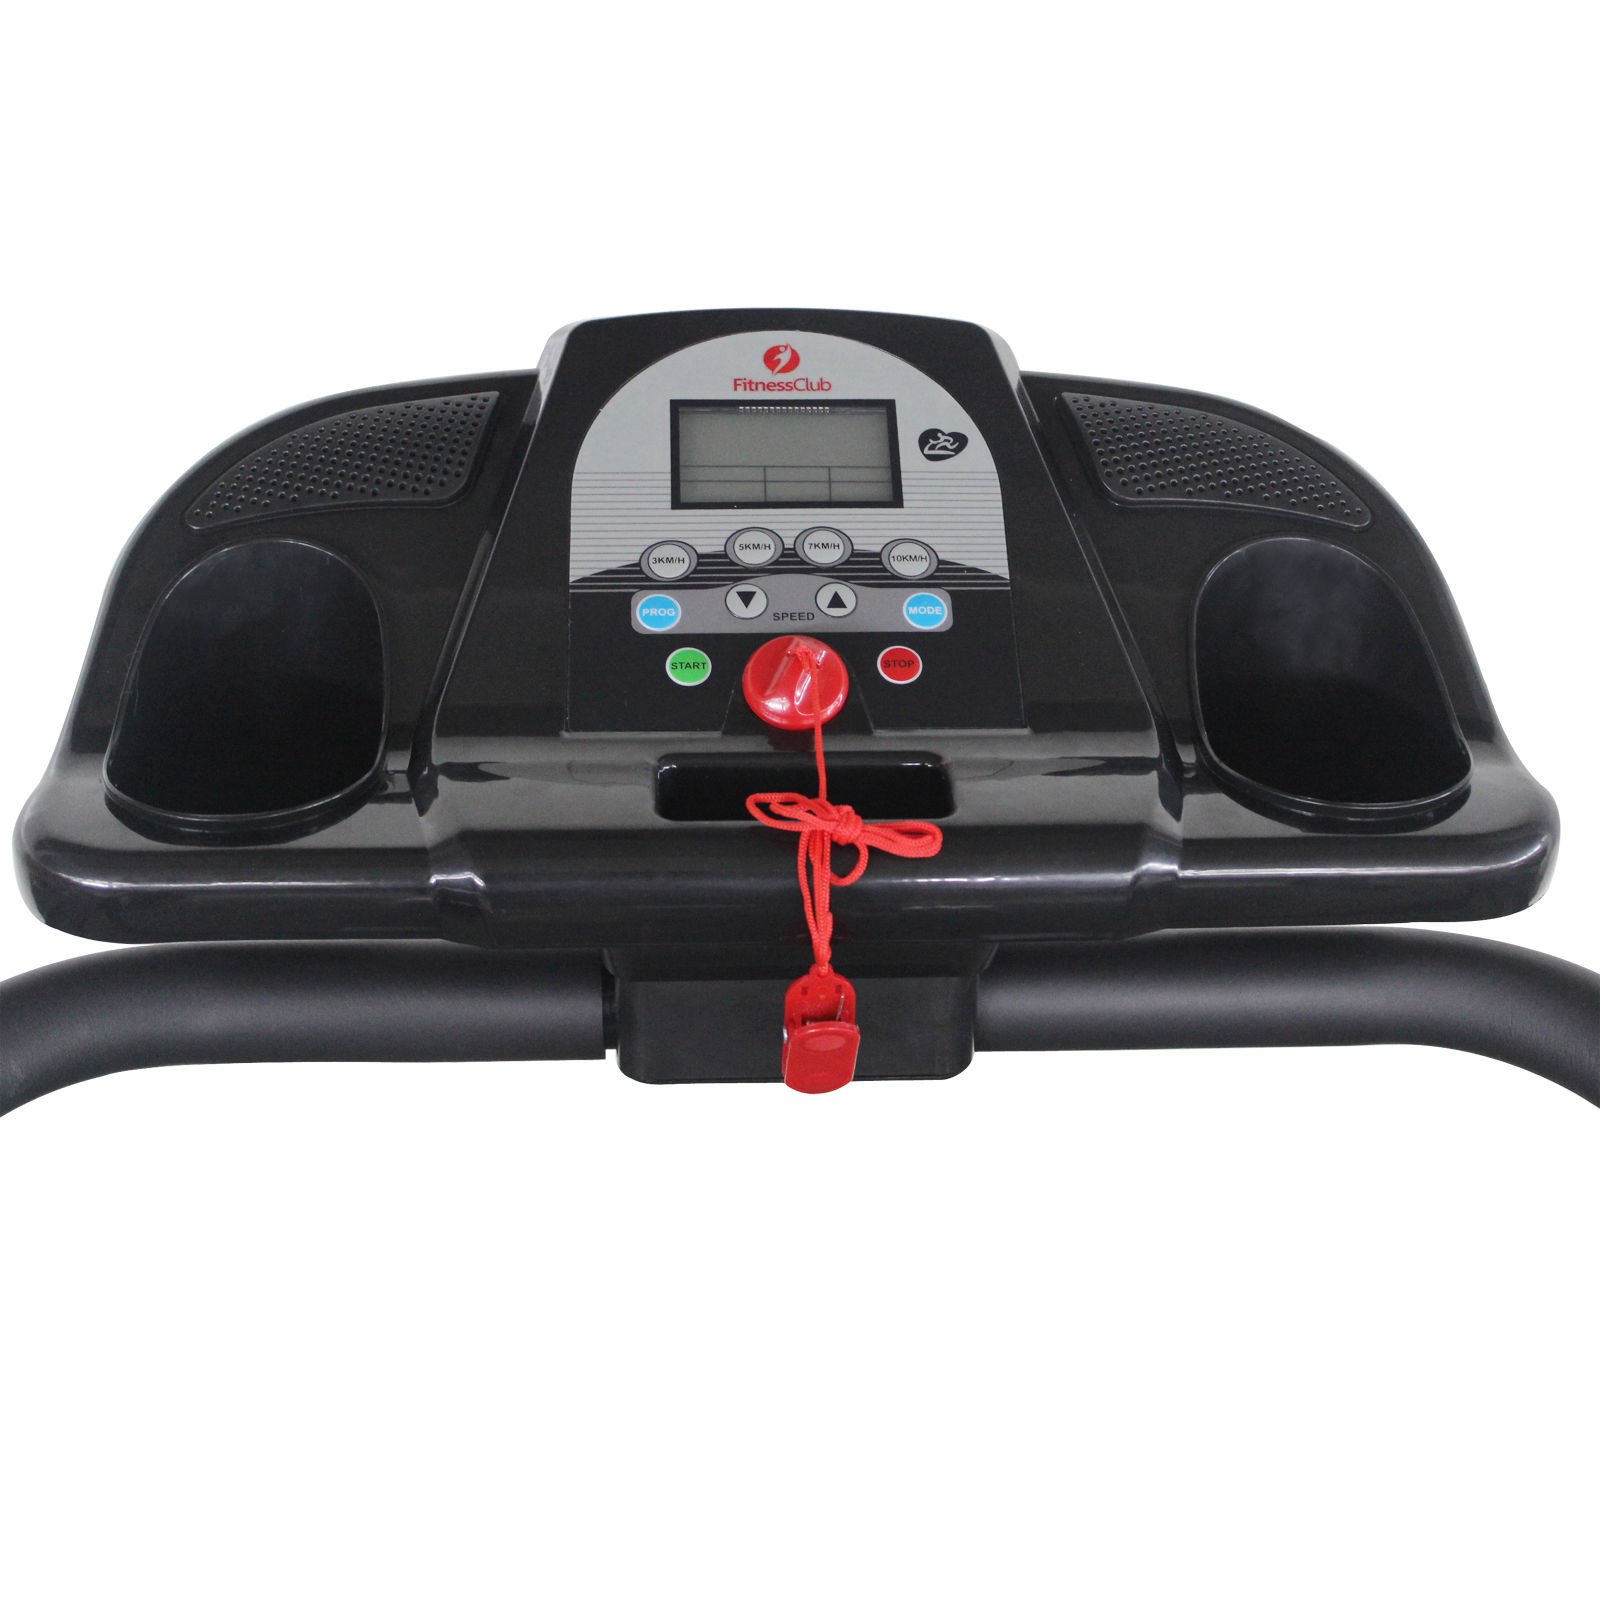 Portable 500W Folding Electric Motorized Treadmill Running Gym Fitness Machine by ZETY (Image #4)